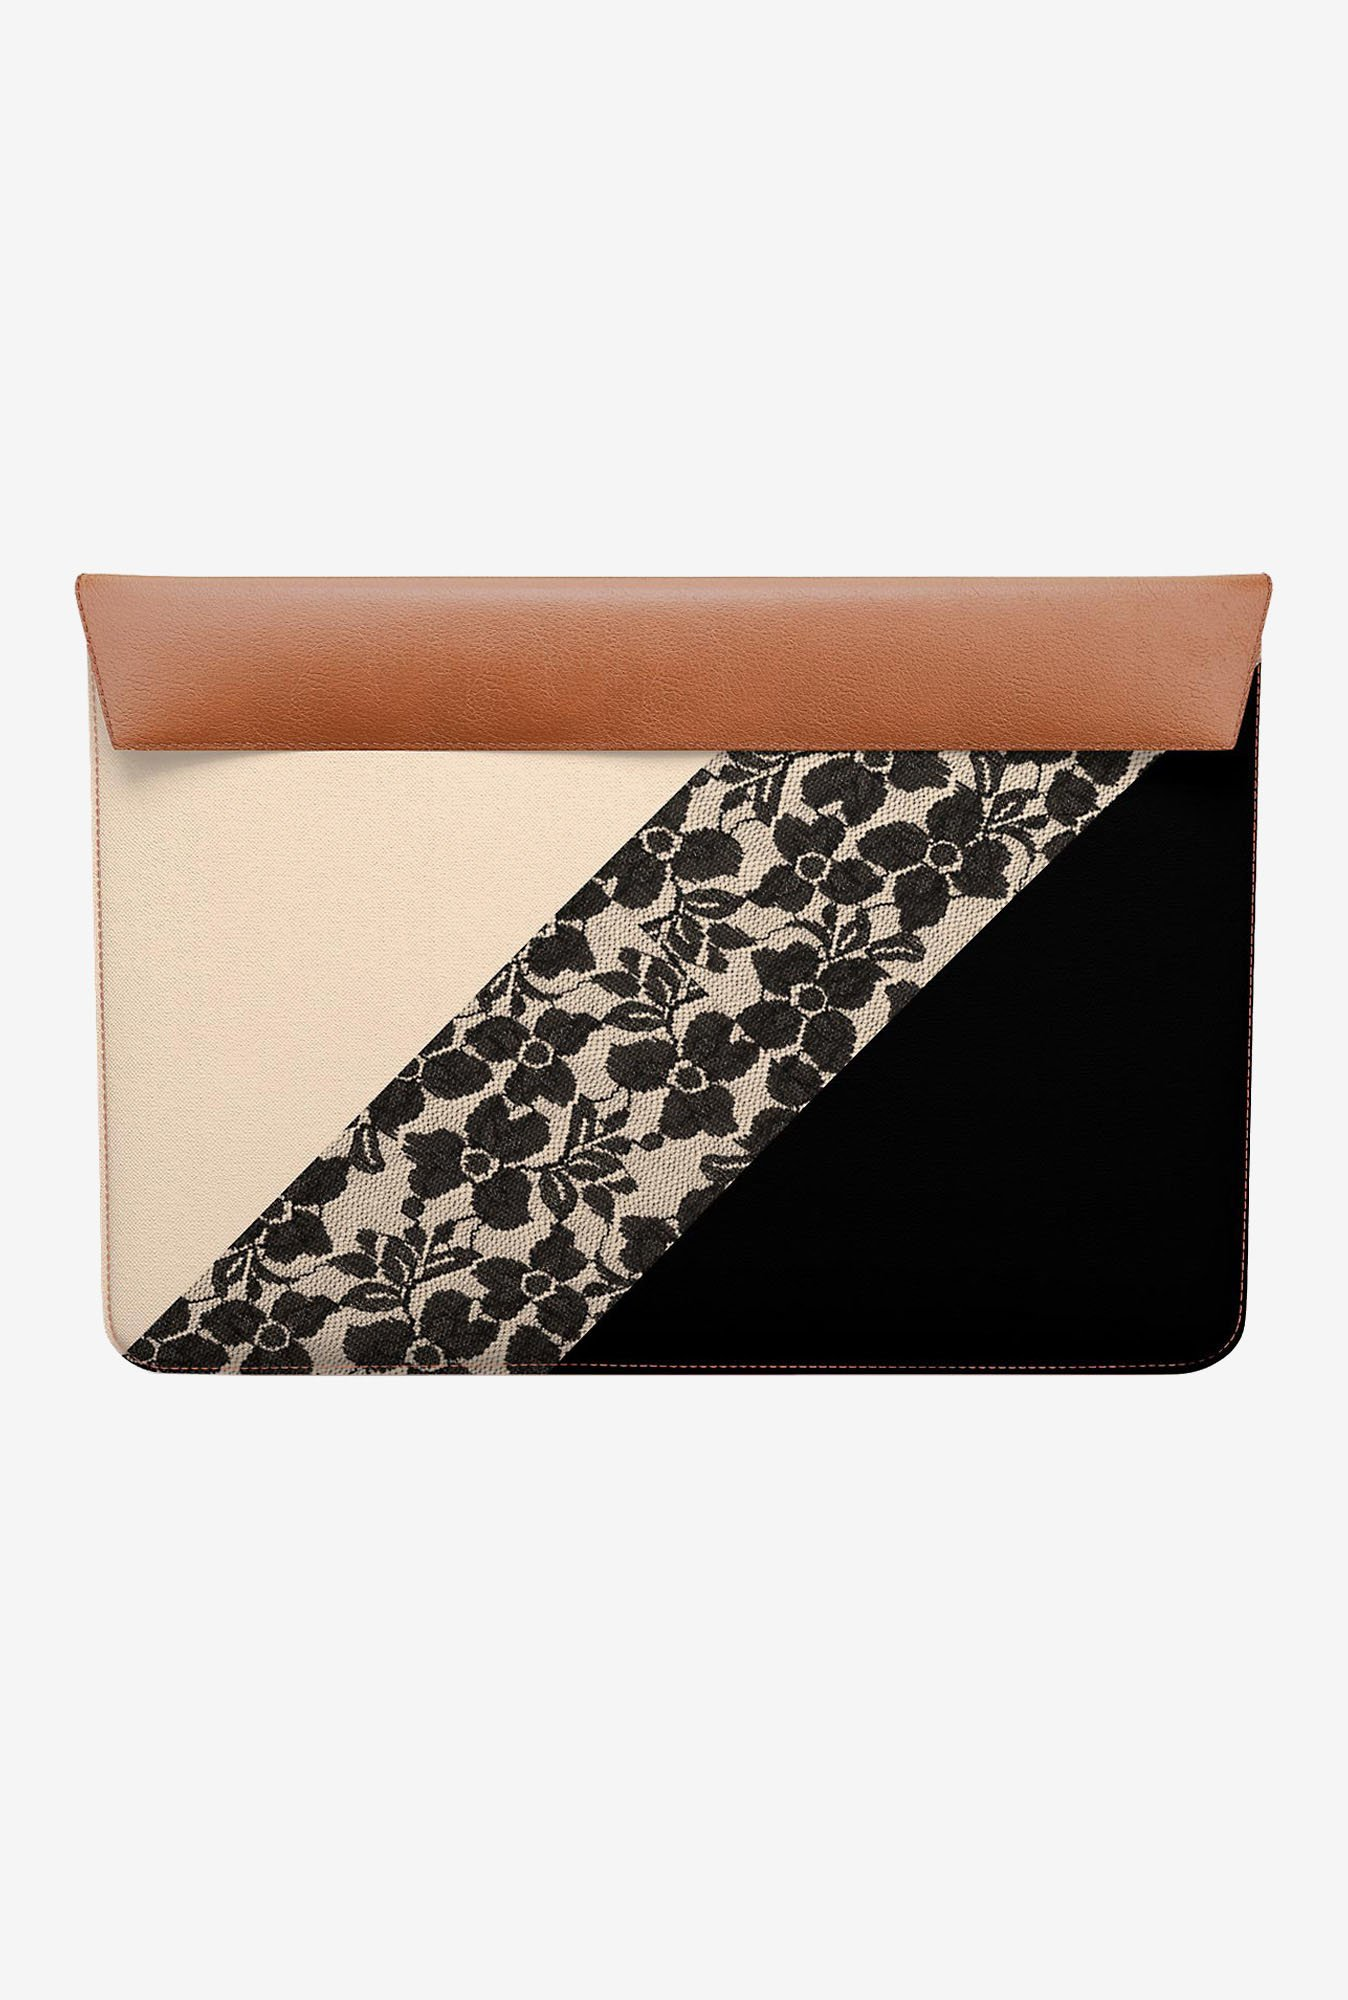 DailyObjects Lace Block MacBook Pro 13 Envelope Sleeve